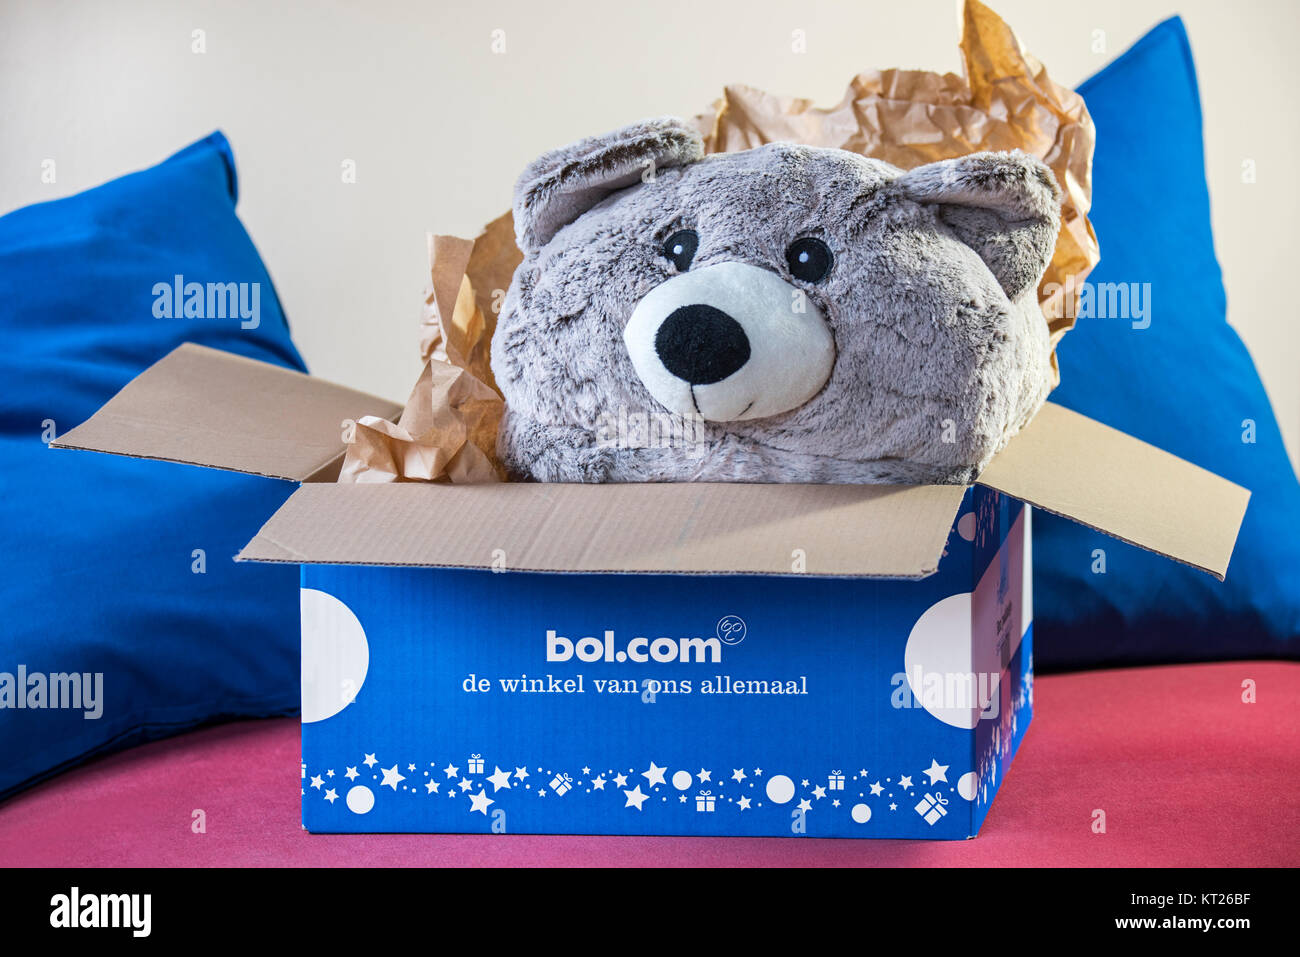 Cuddly bear / teddy bear present in open cardboard box bought at bol.com, leading webshop in the Netherlands for - Stock Image